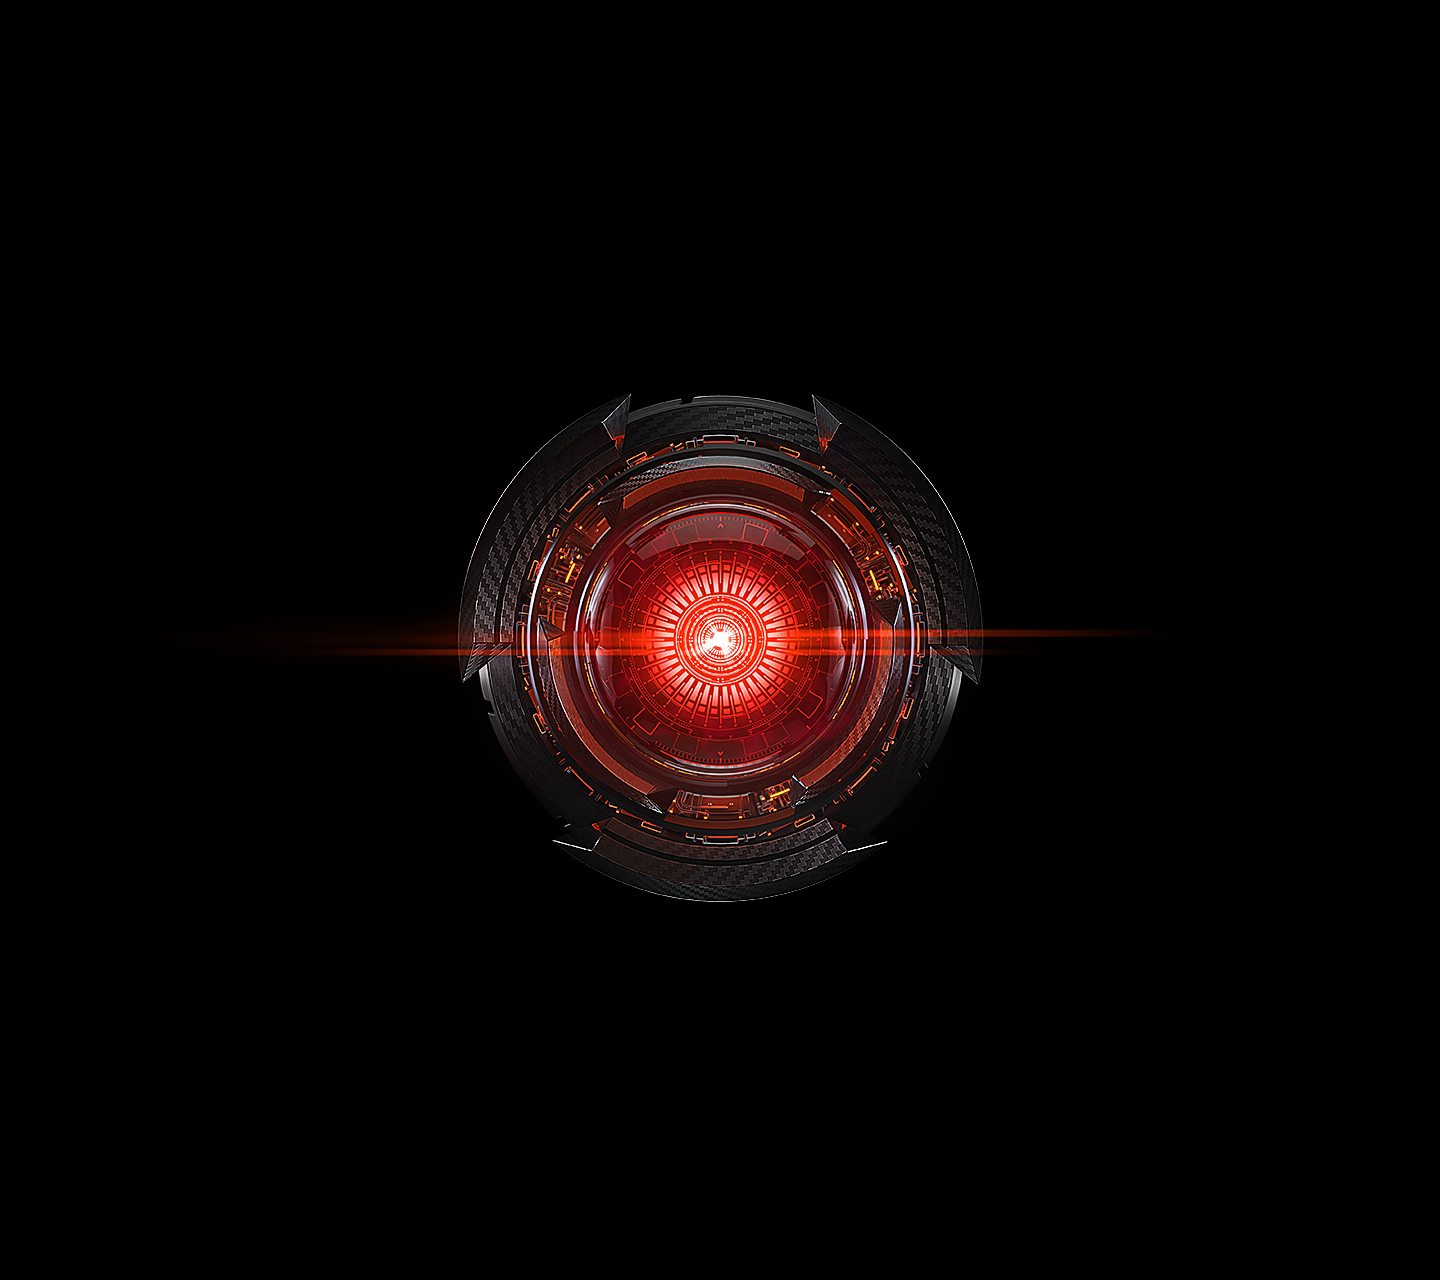 Collection of Droid Wallpaper on HDWallpapers